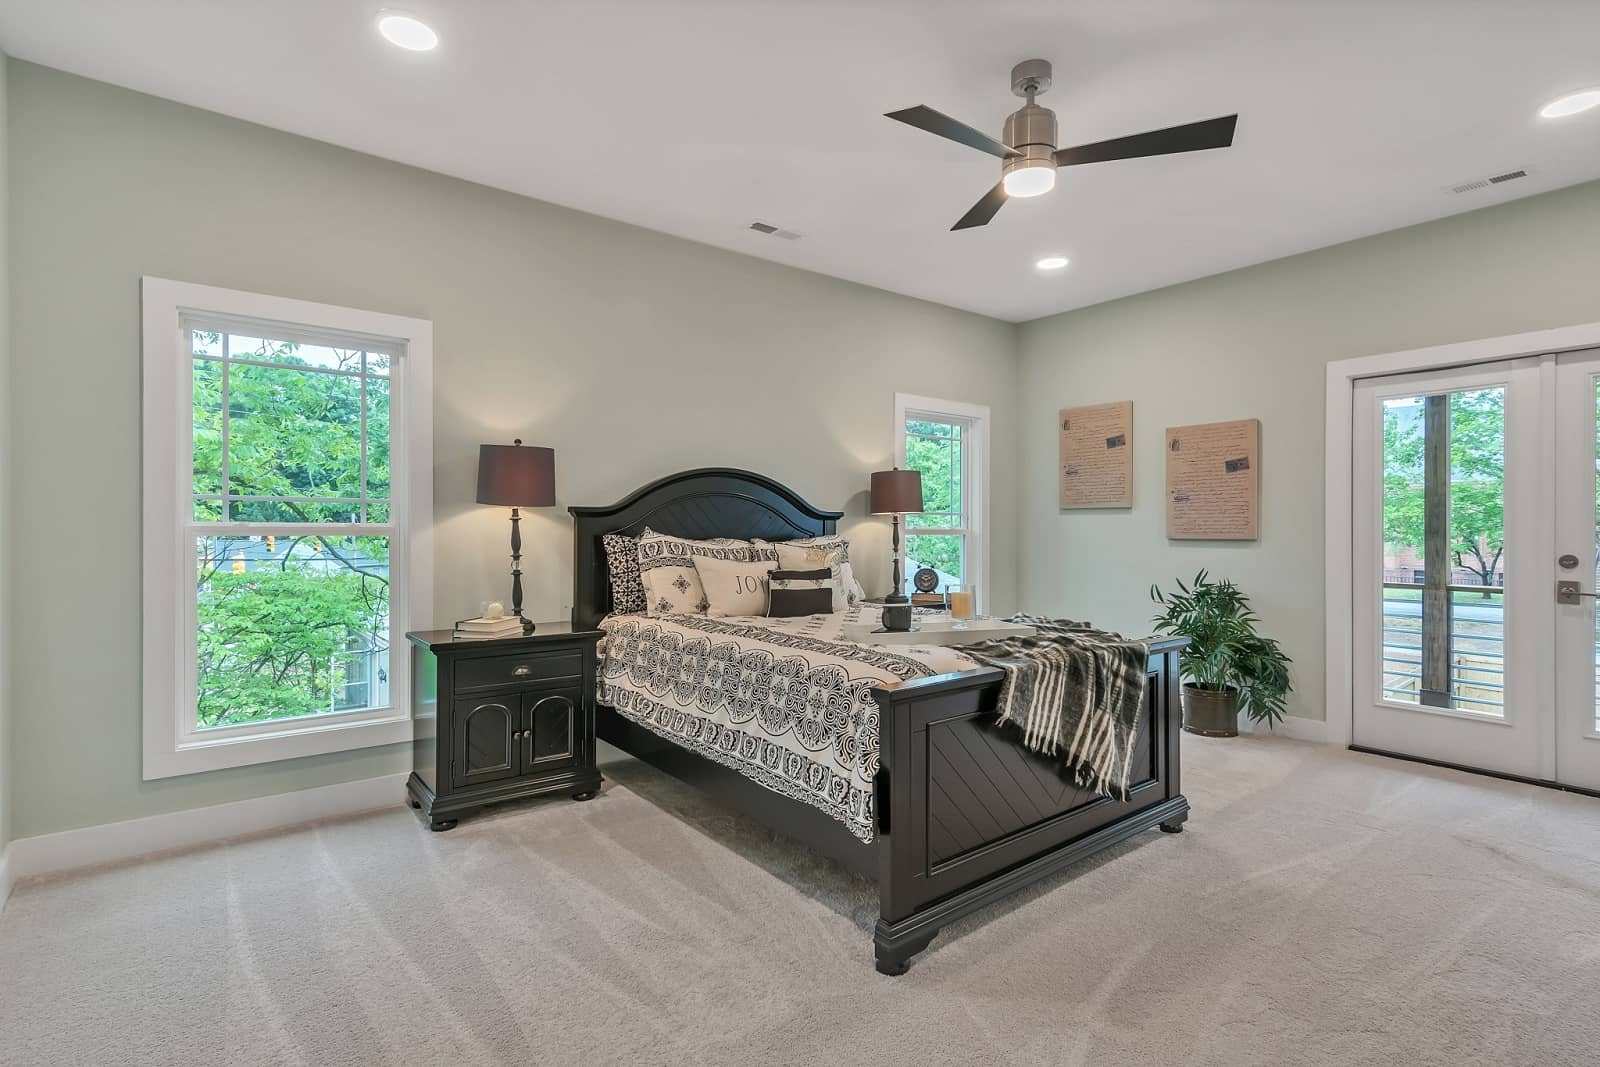 Real Estate Photography in Raleigh - NC - USA - Bedroom View